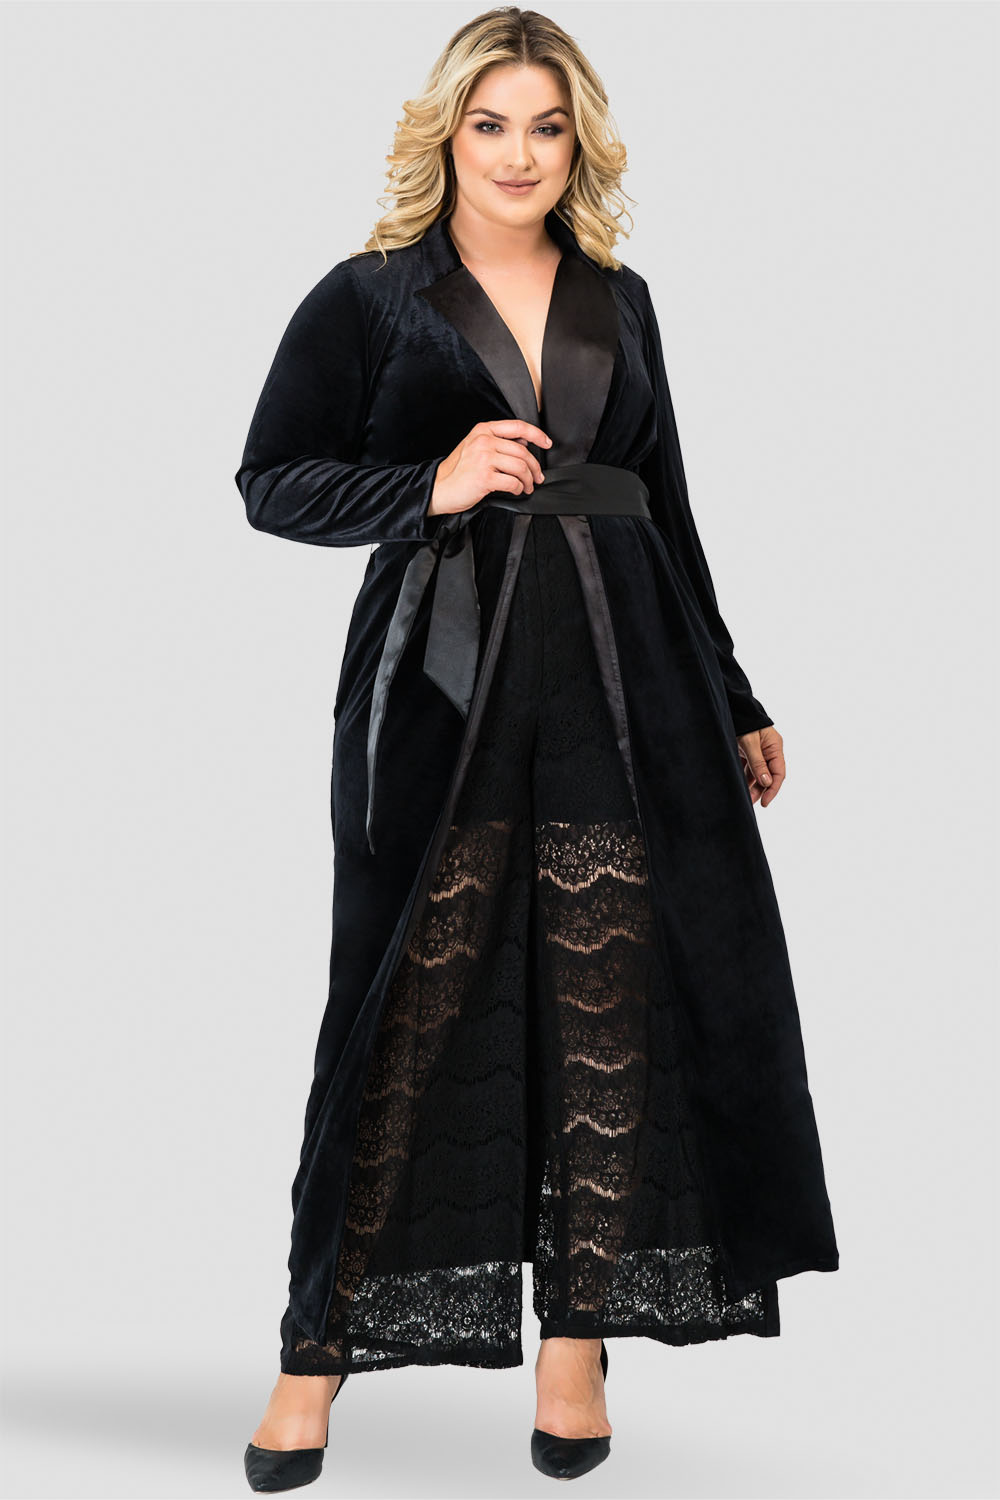 Standards & Practices Freya Stretch Velvet Wrap Midi Coat Dress with Satin Lapel & Satin Belt